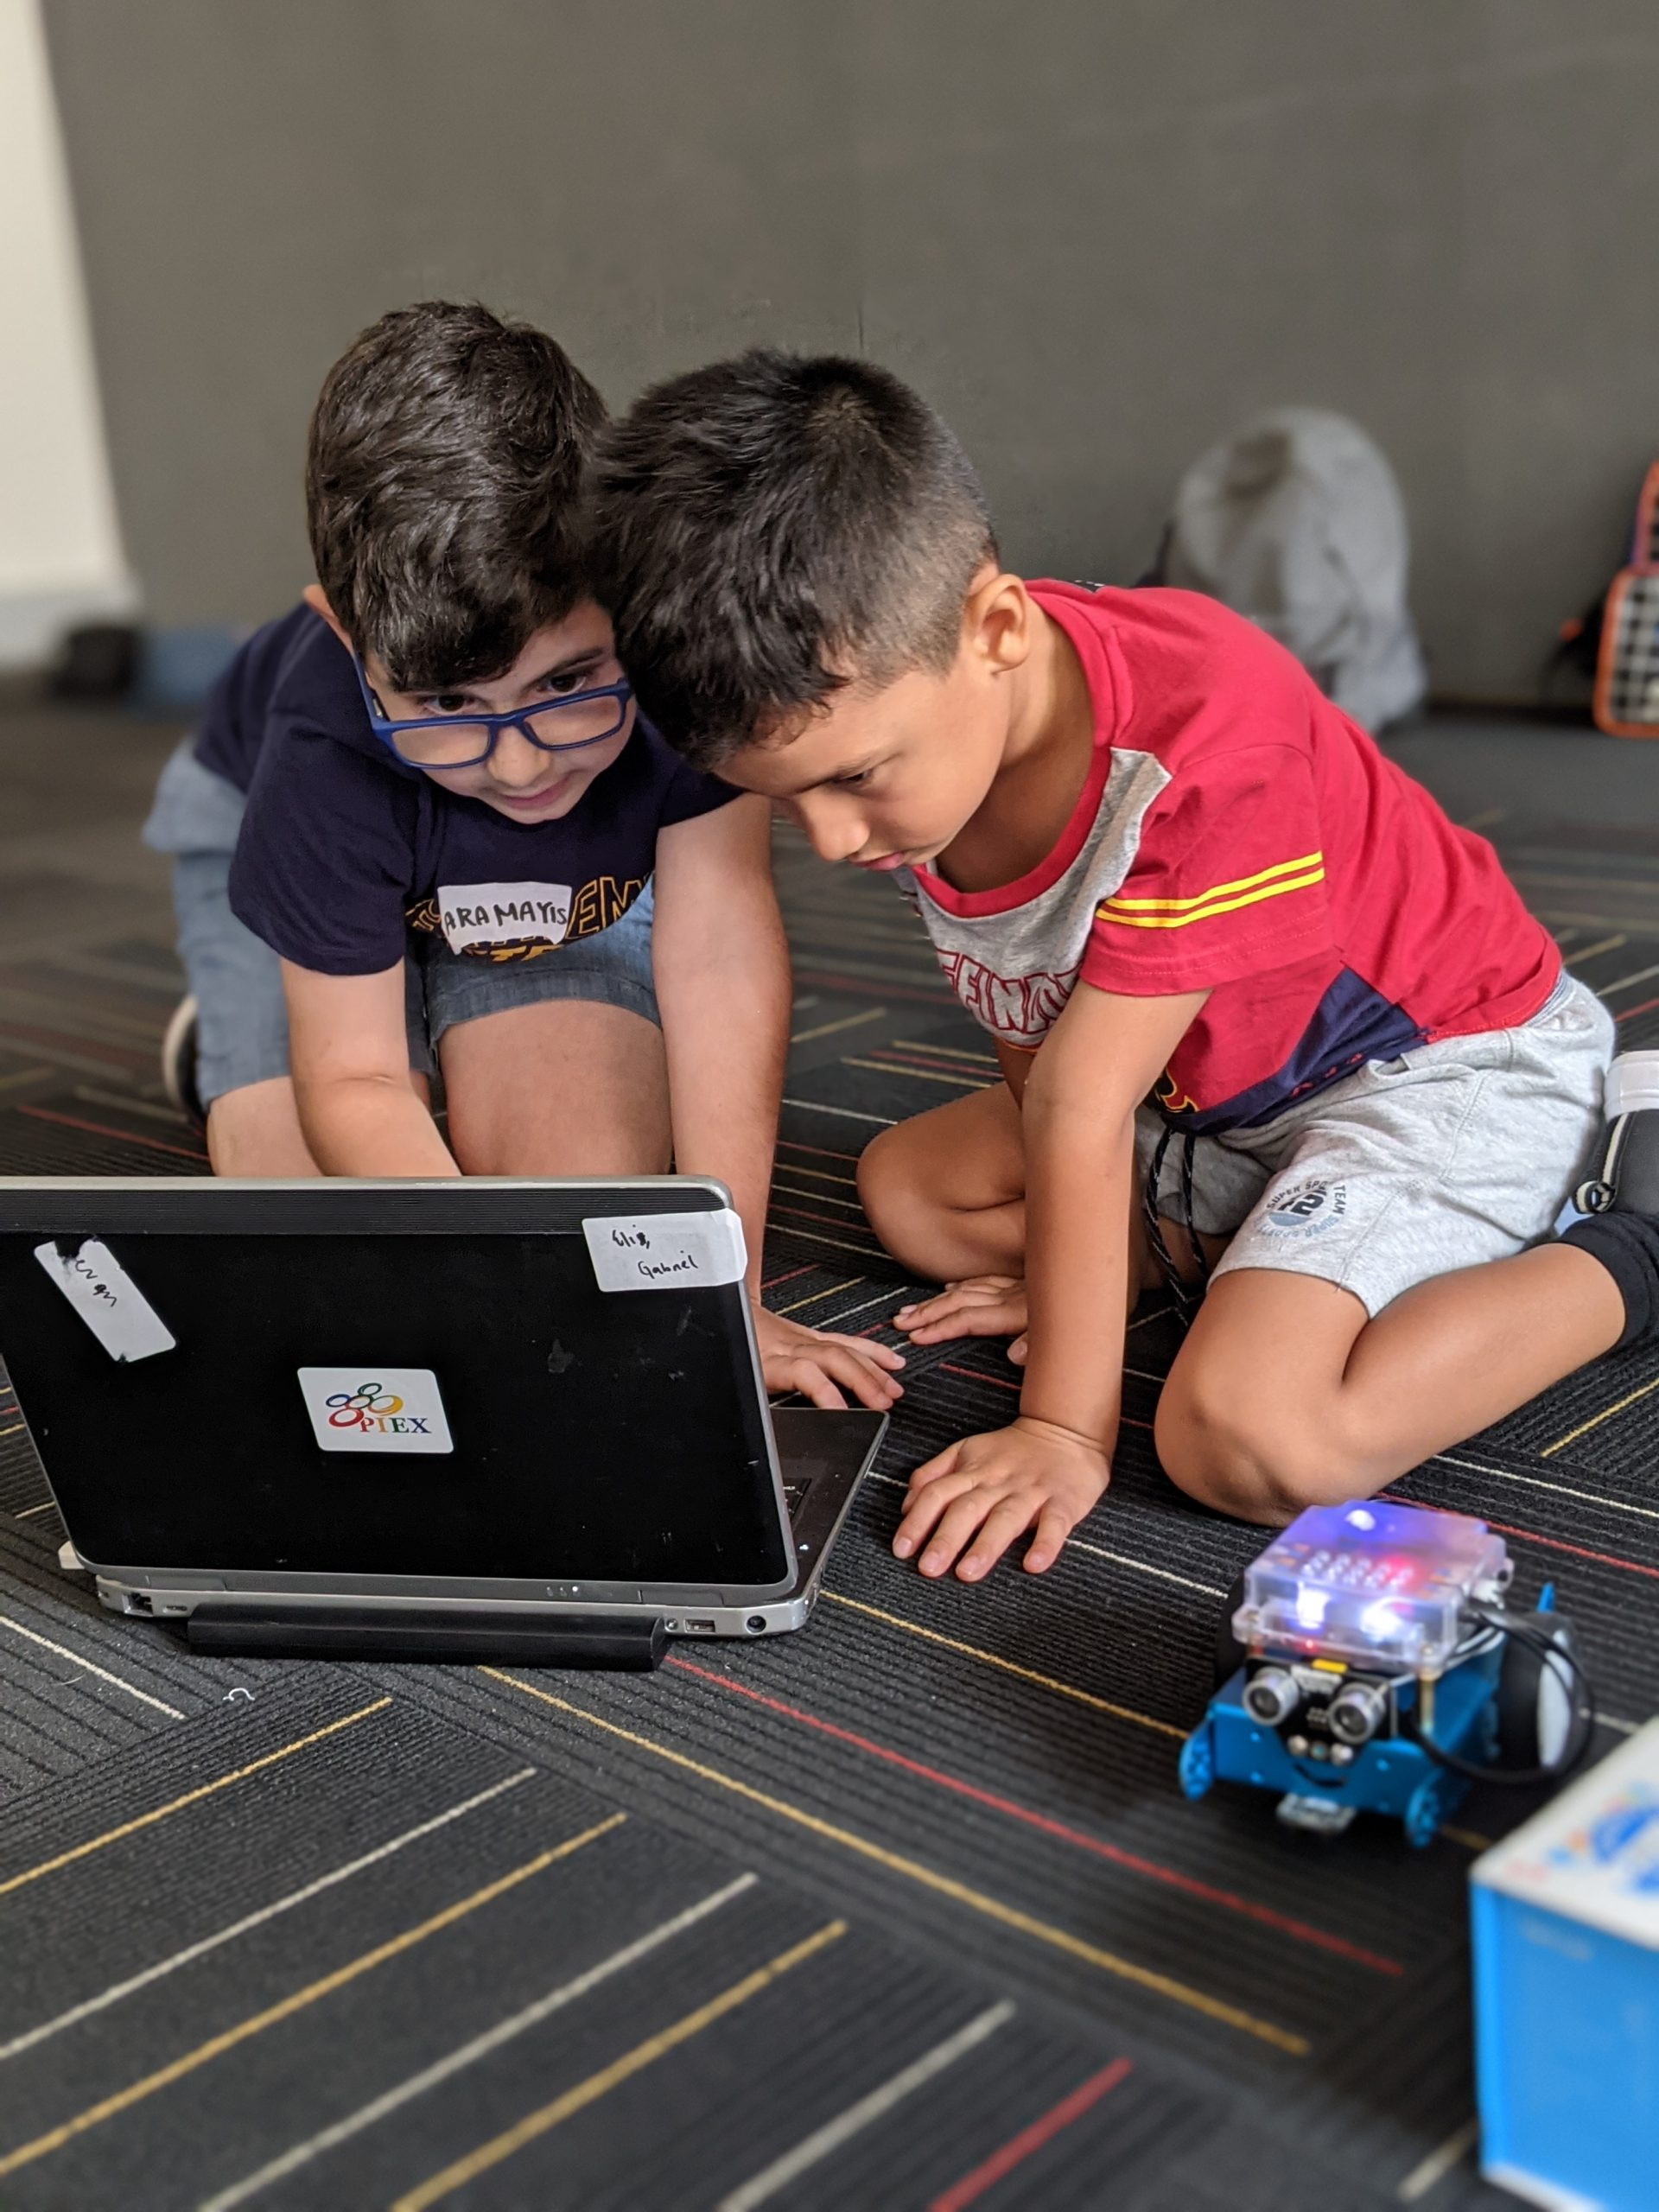 Two Boys WOrking on the laptop to control their educational robot, mBot.